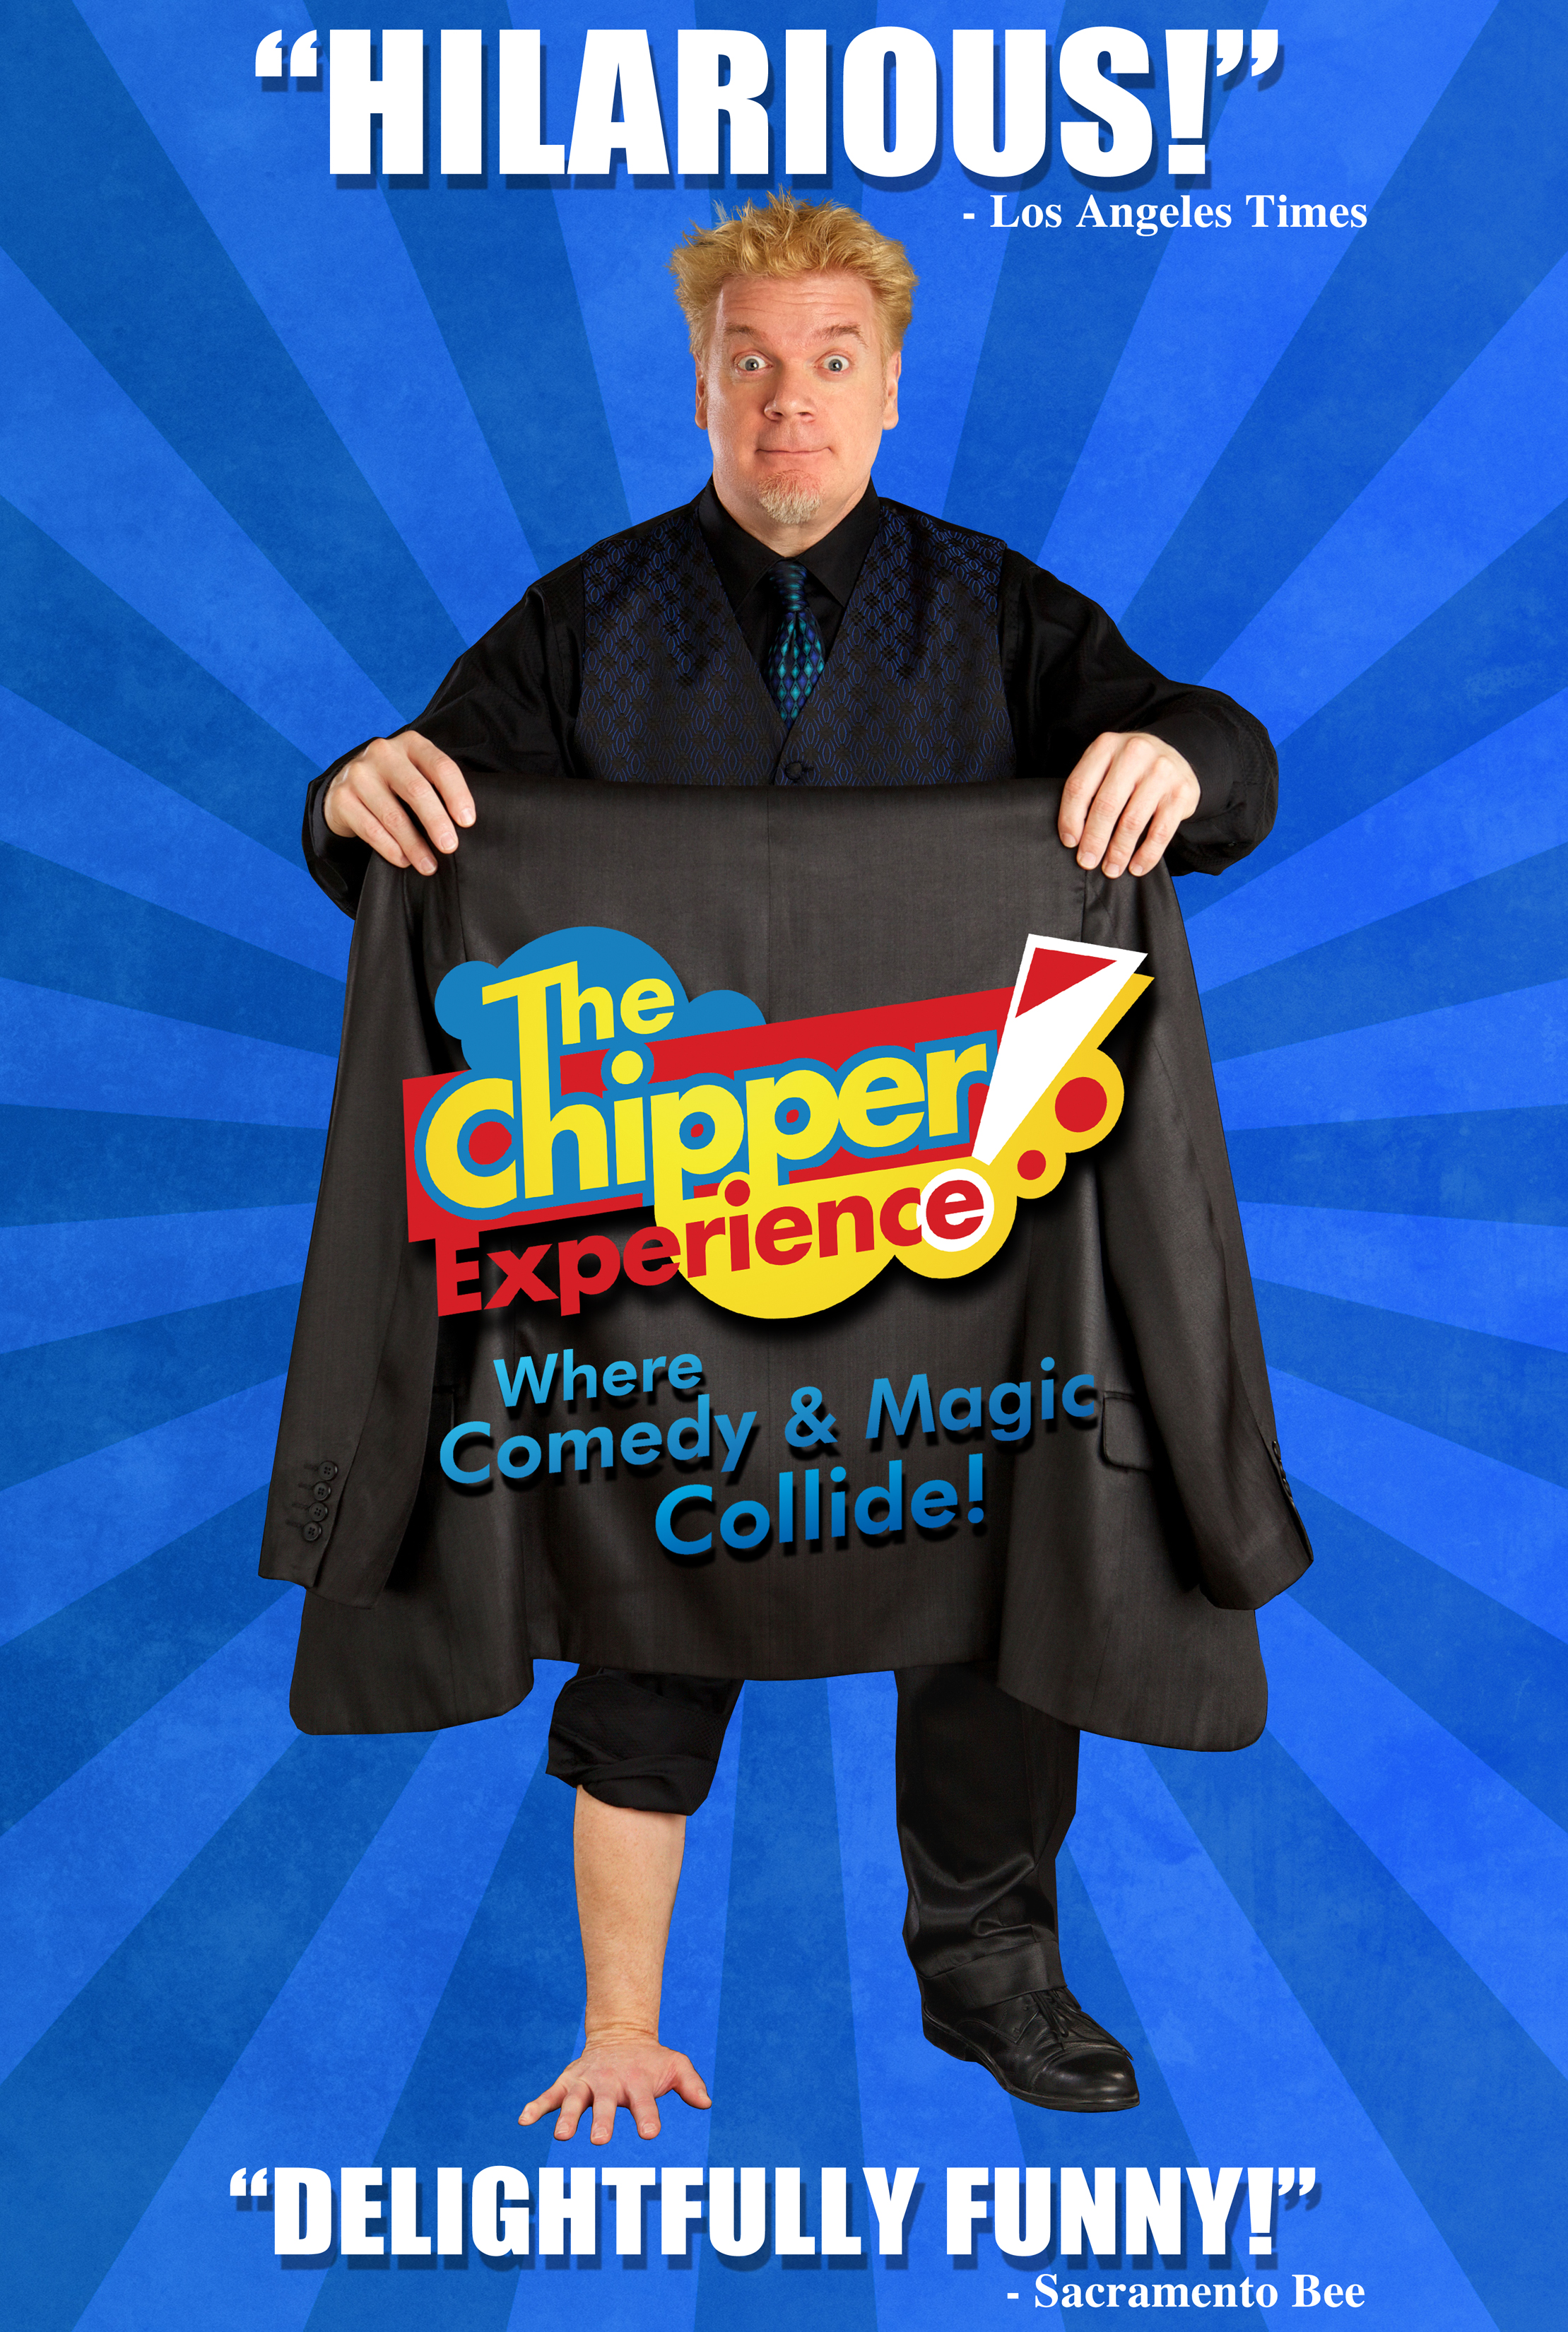 Chipper Lowell - COMEDY & MAGIC COLLIDE ! HILARIOUS SHOW NOT TO BE MISSED!